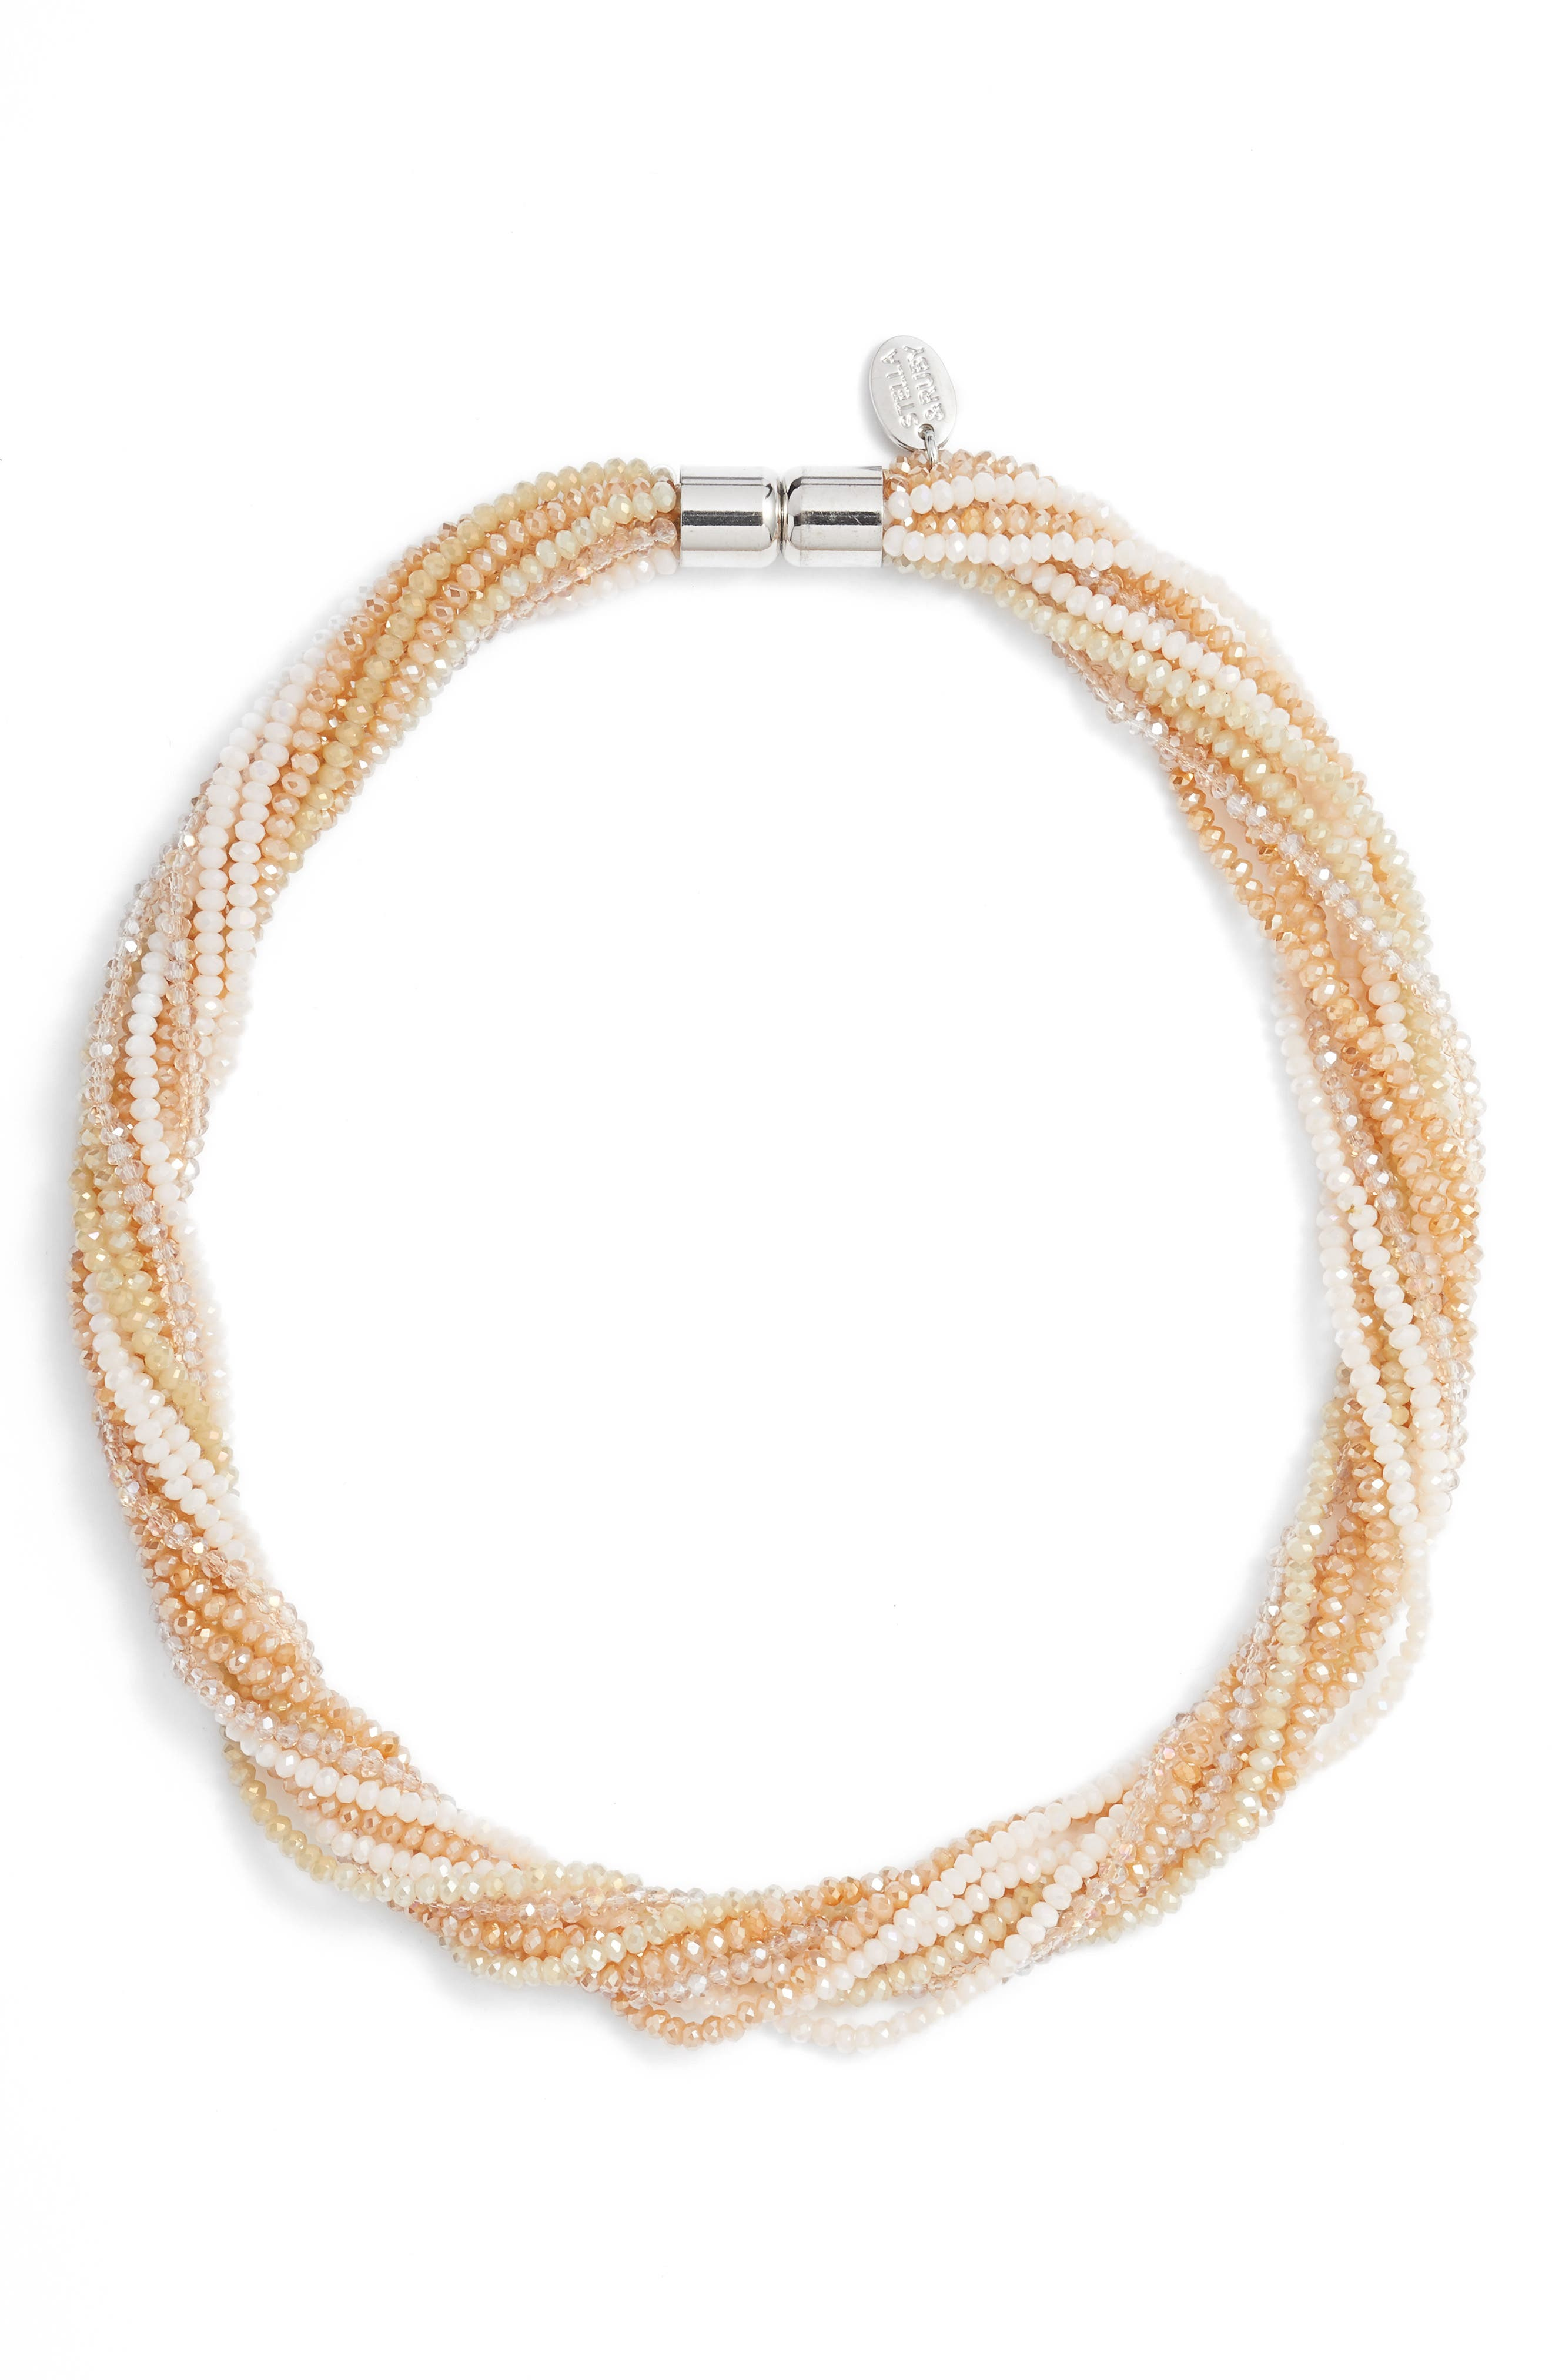 Multi Strand Beaded Necklace,                             Main thumbnail 1, color,                             250